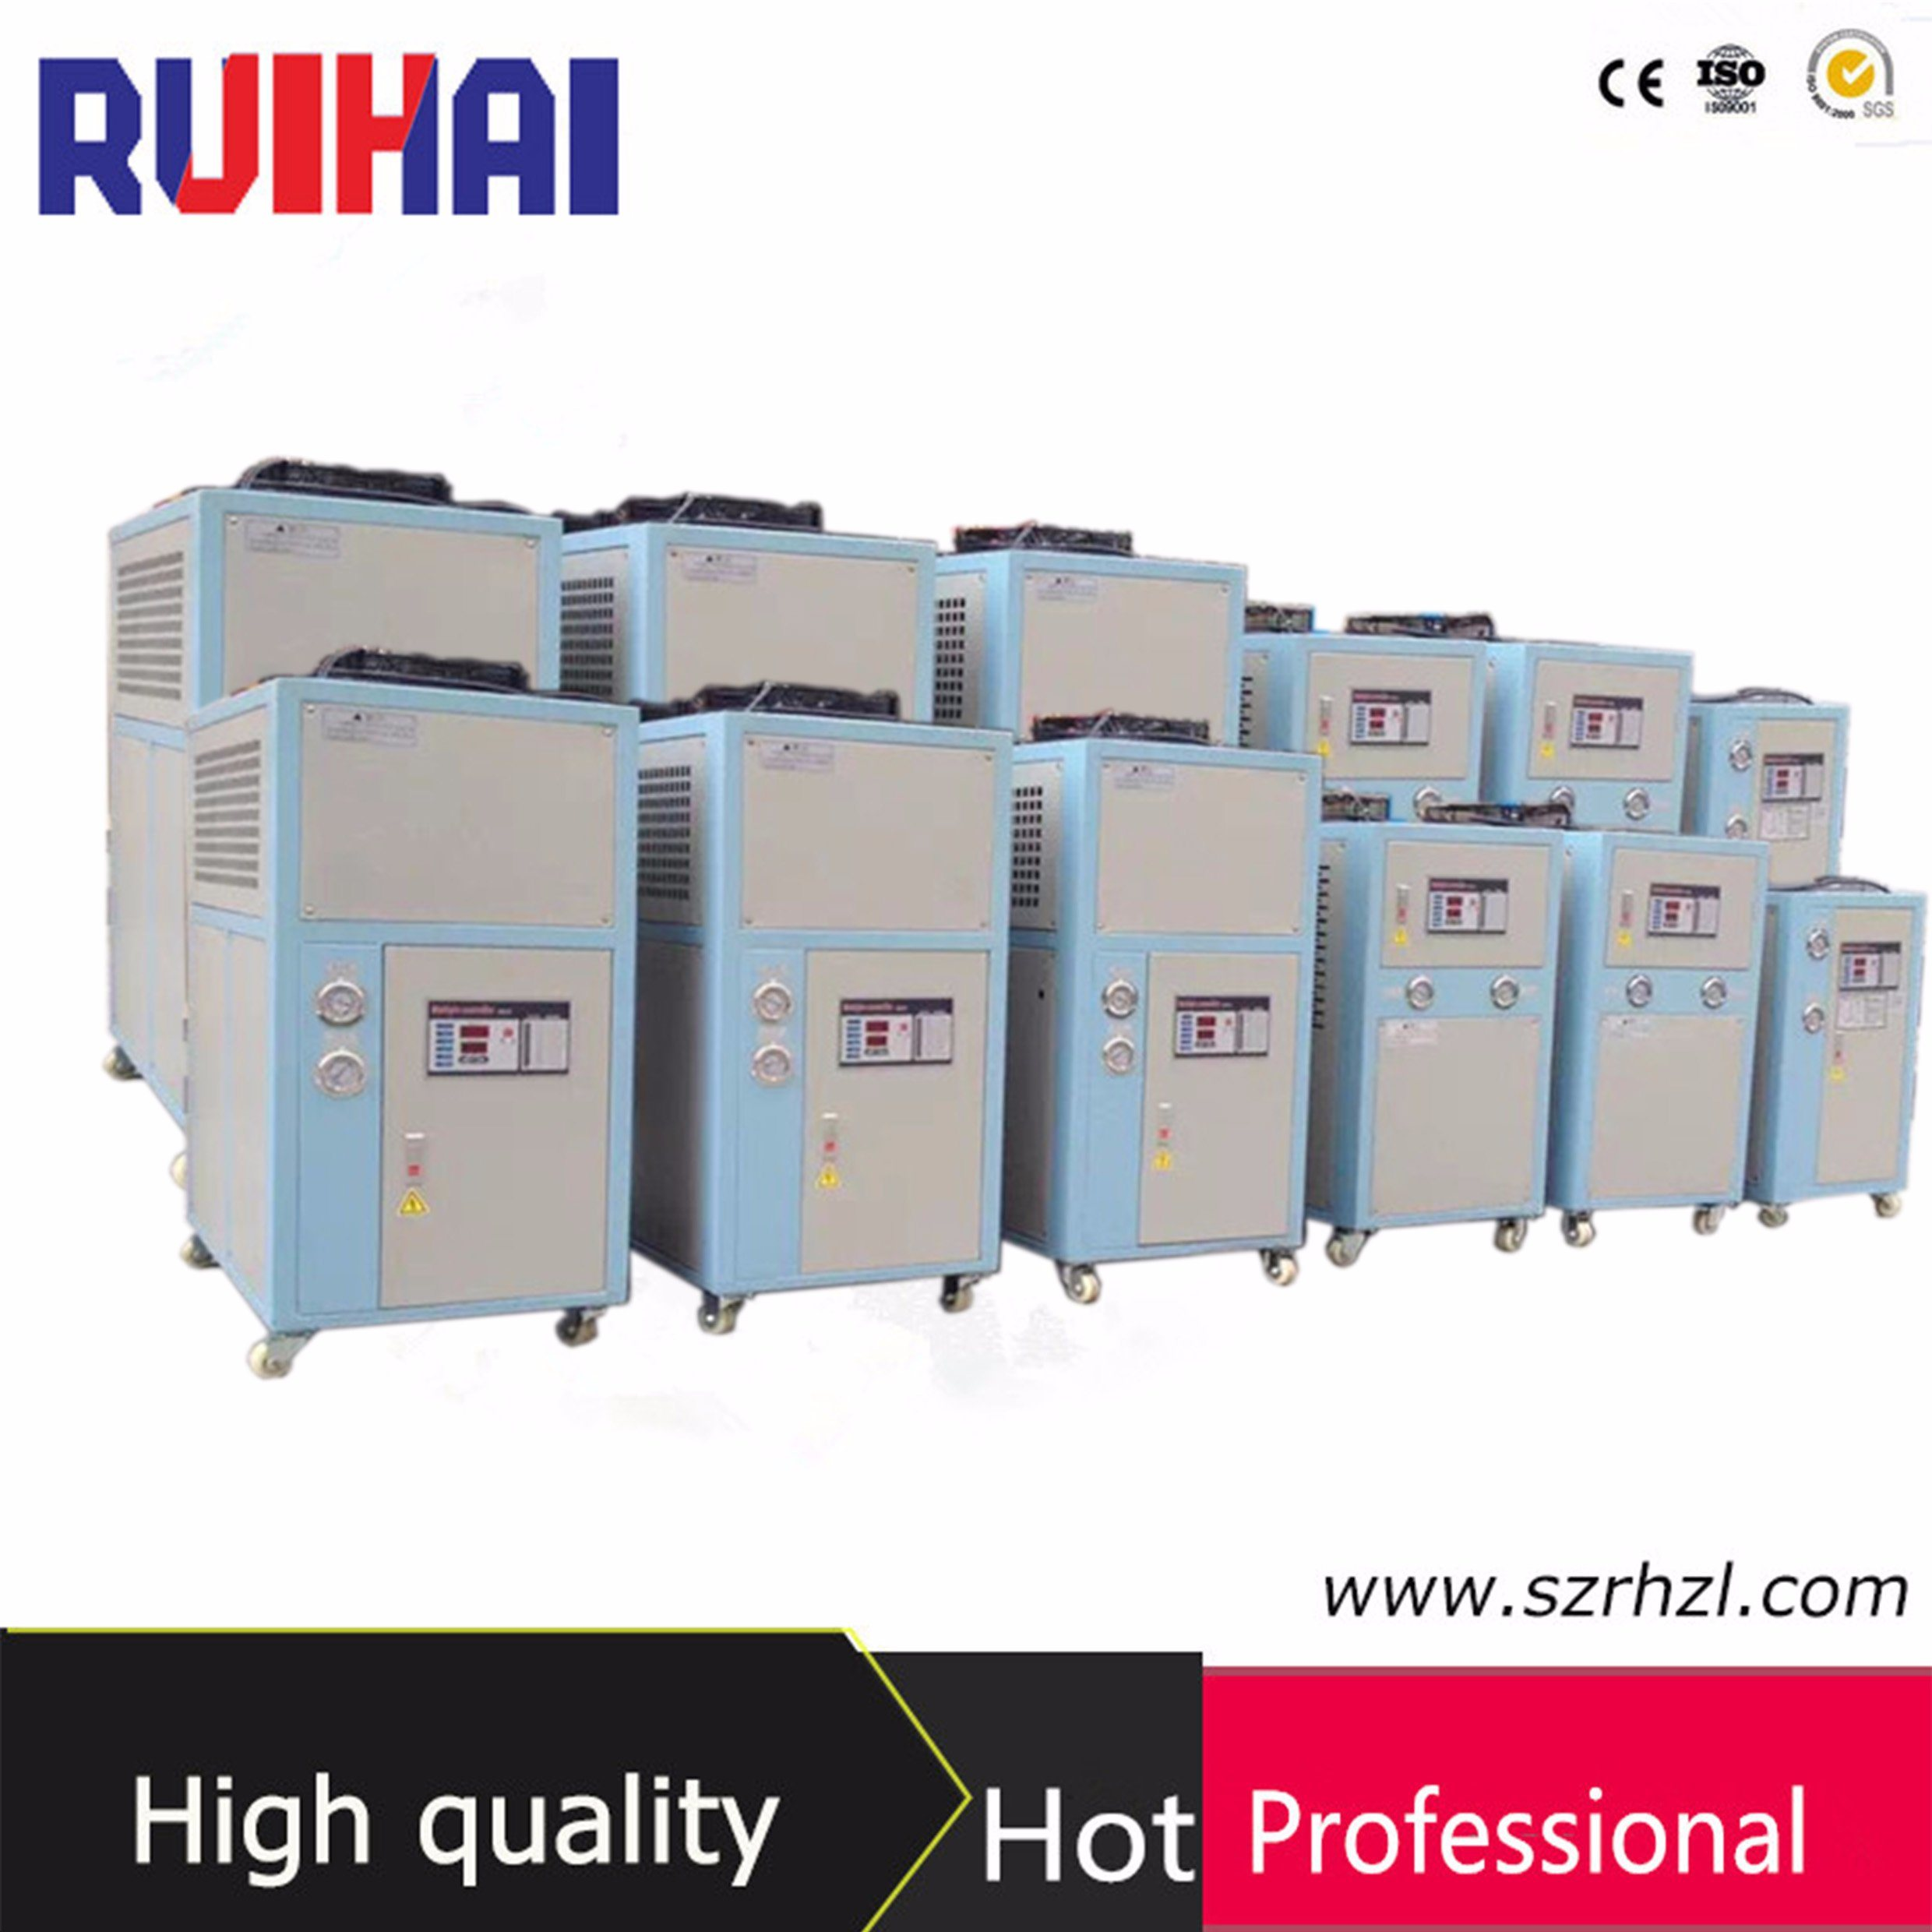 2HP Small Chiller Air Cooled Type for 120 Ton Injection Molding Machine Cooling